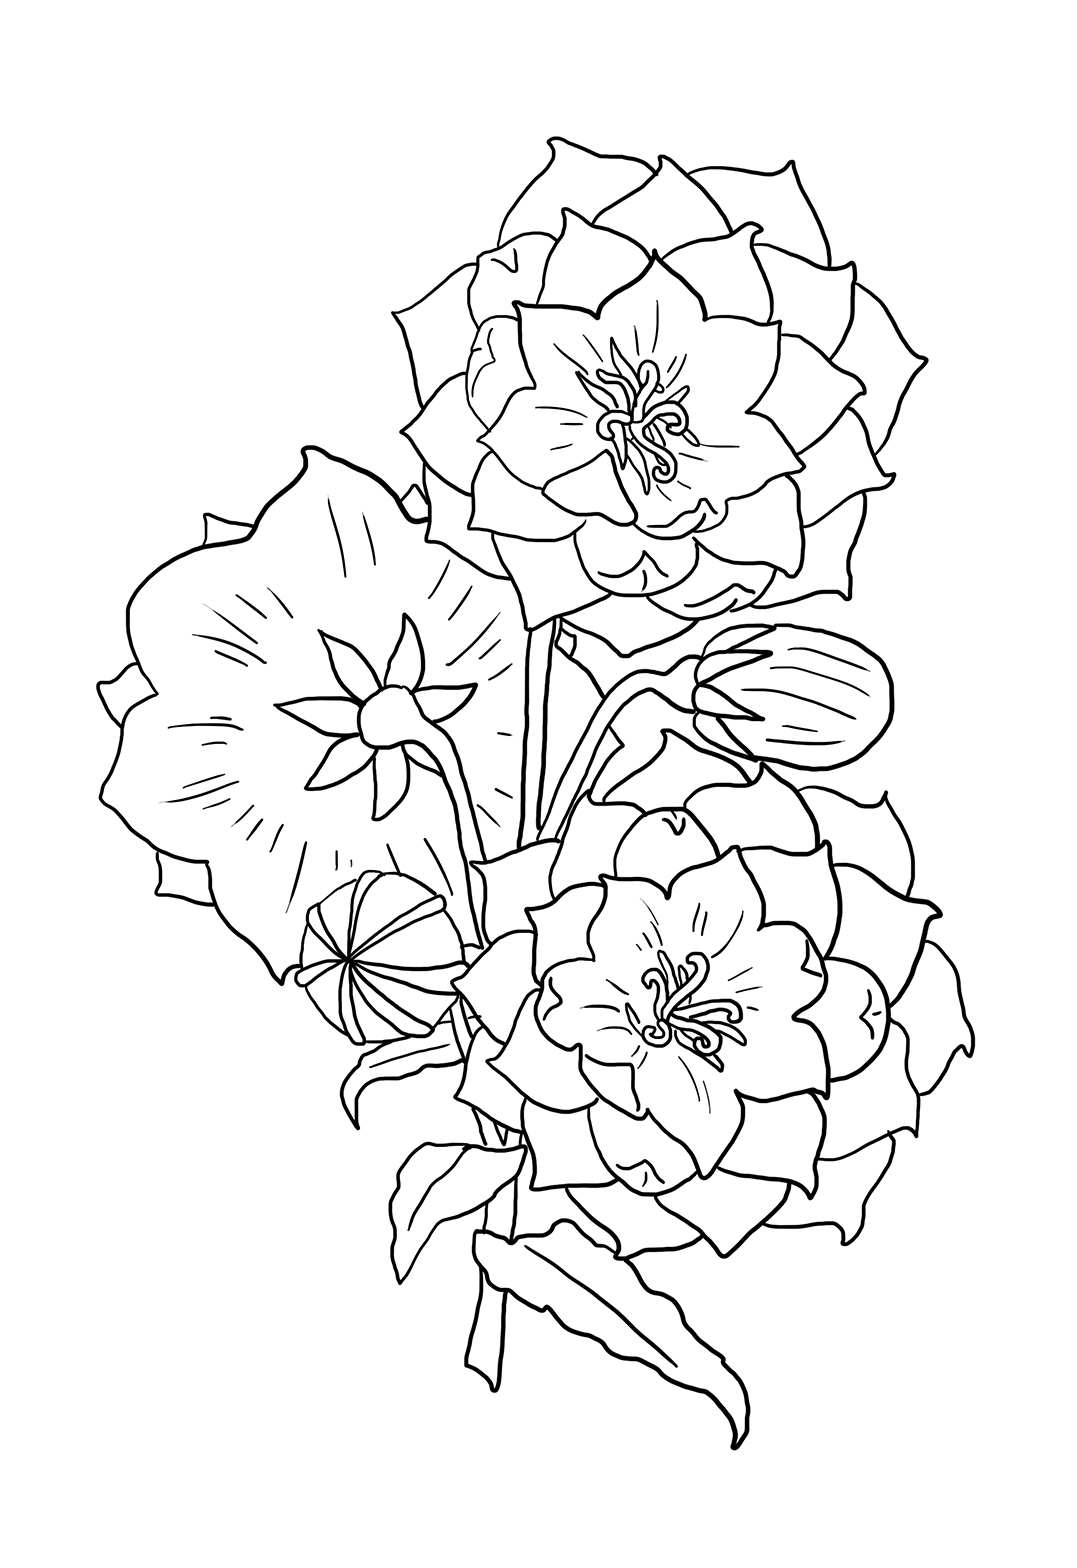 flower coloring book pages free printable flower coloring pages for kids flower pages book coloring